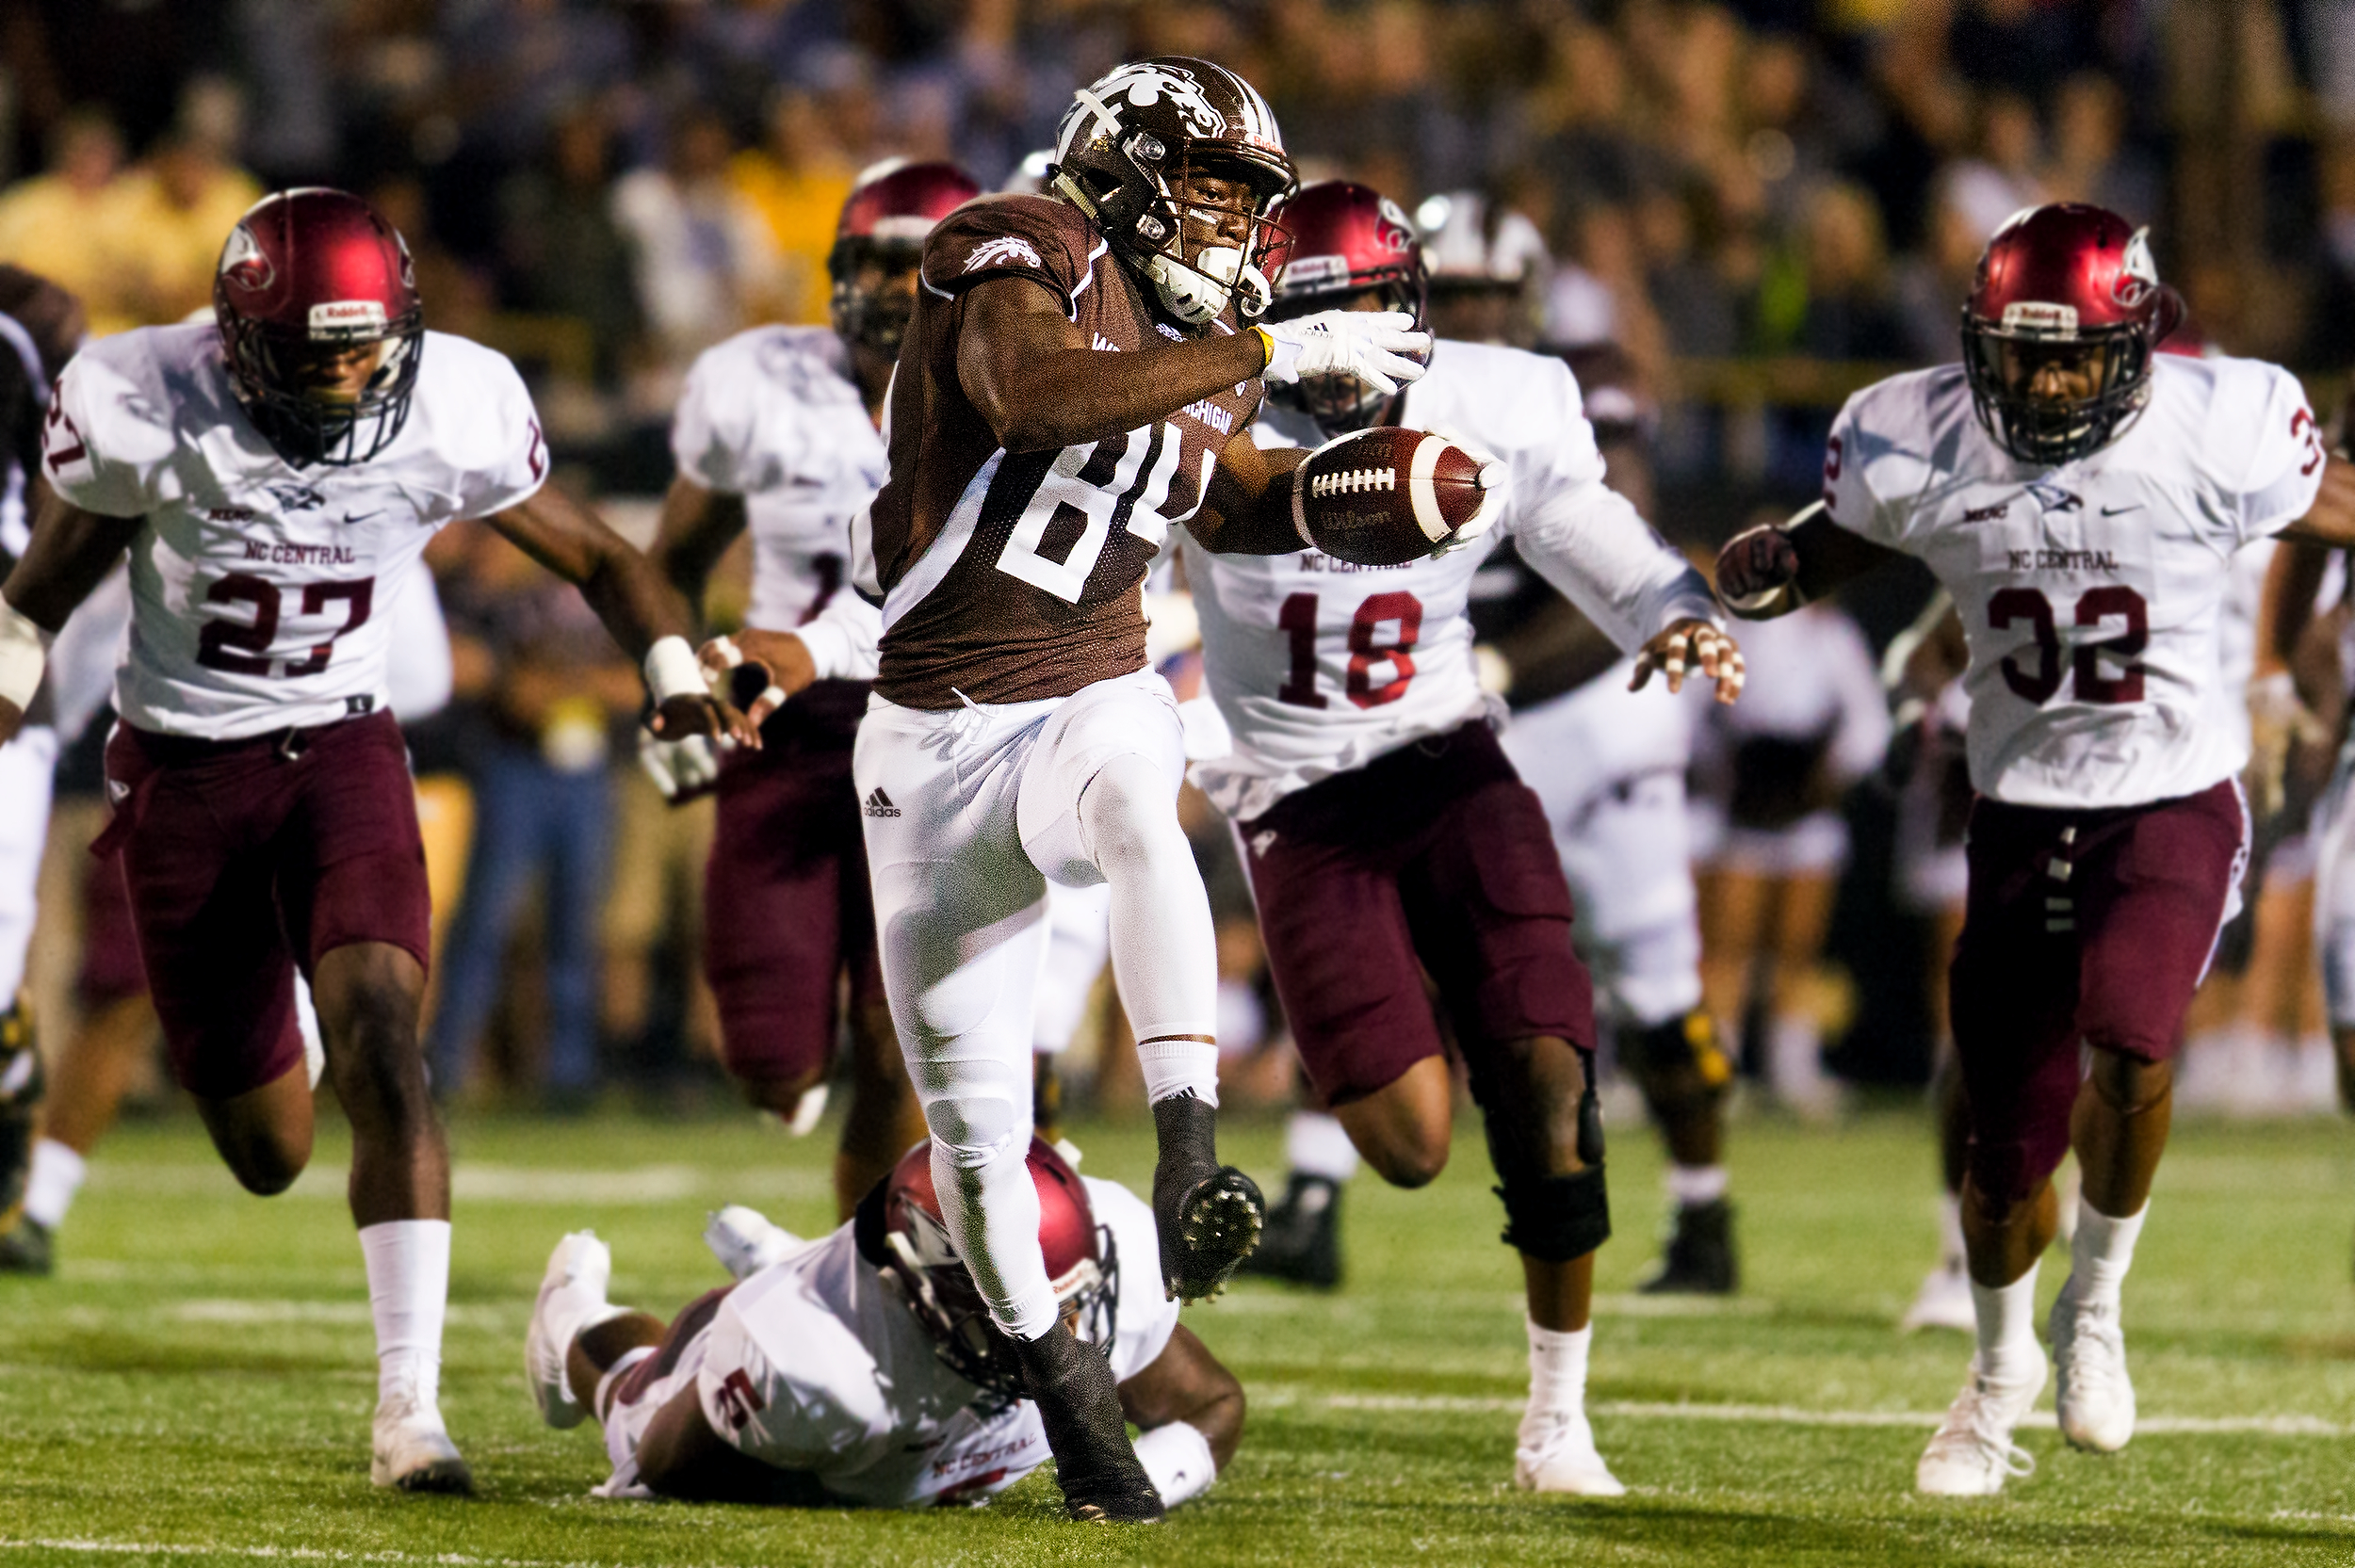 Western Michigan Broncos wide receiver Corey Davis (84) breaks a tackle after catching the ball during the first half against North Carolina Central. Davis scored his second touchdown of the night on the 46-yard play and WMU defeated NCCU 70-21.